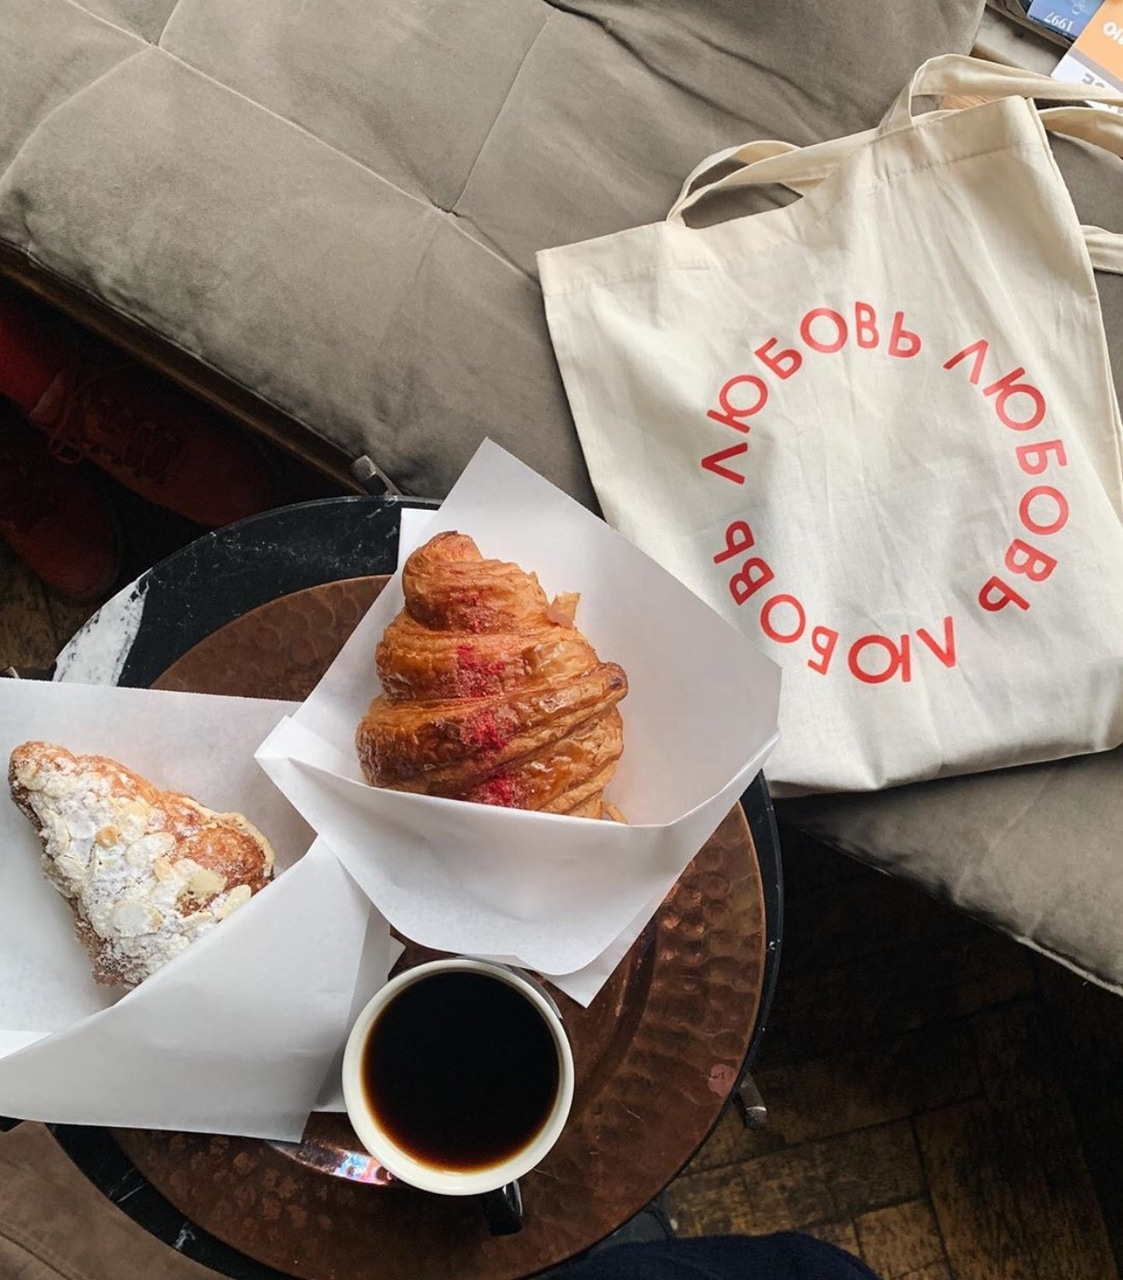 coffee, croissant, espresso and pastries